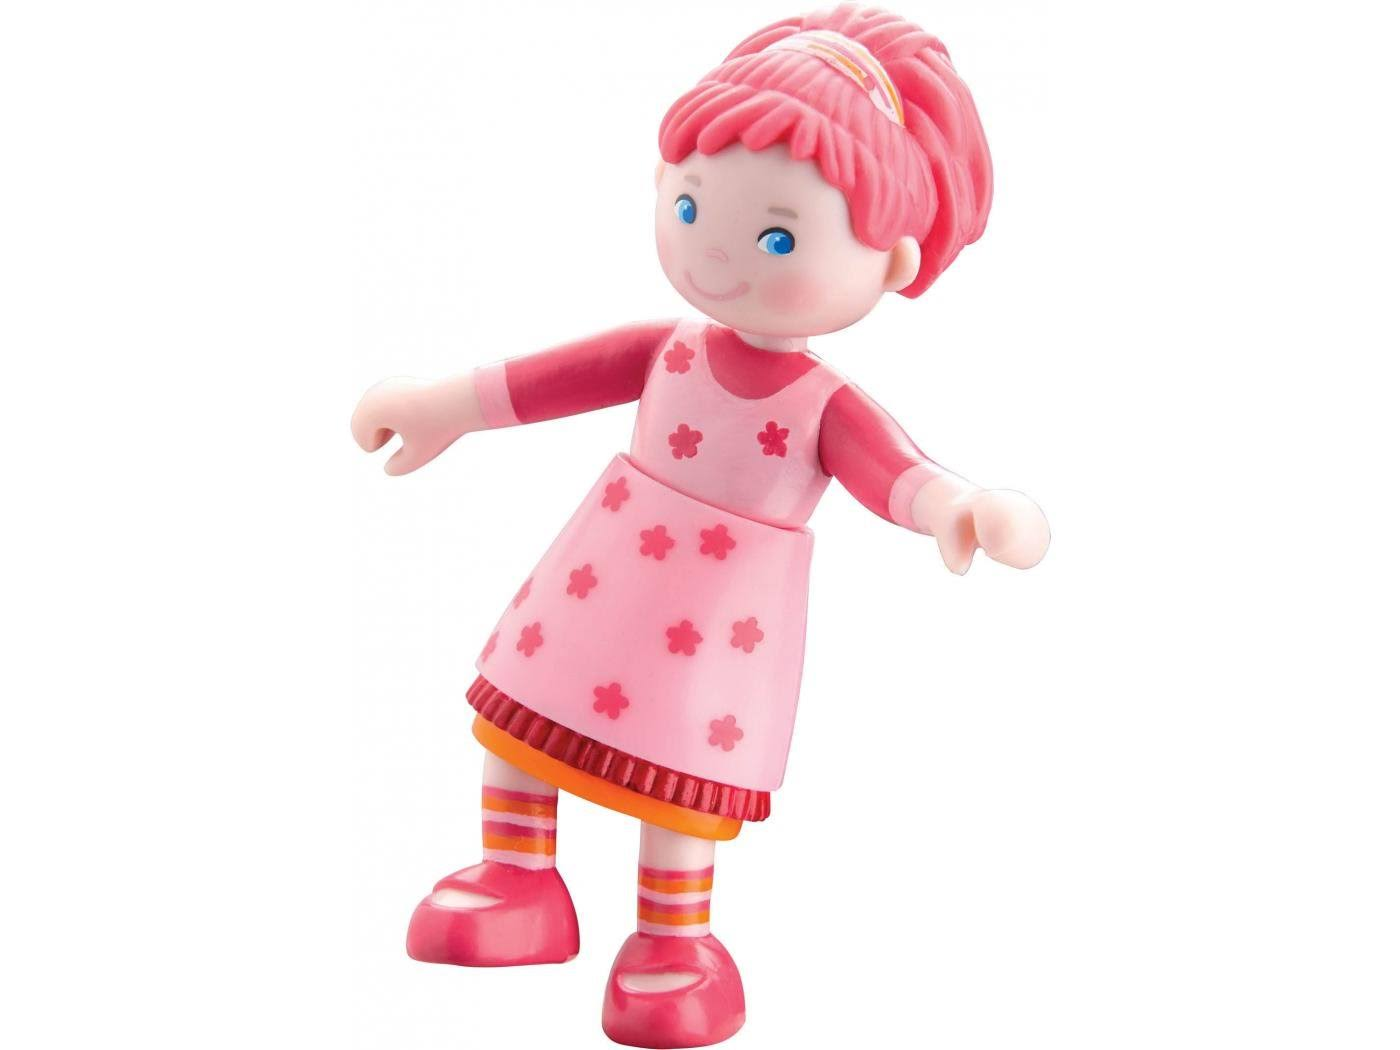 Haba Little Friends - Bendy Doll Lilli